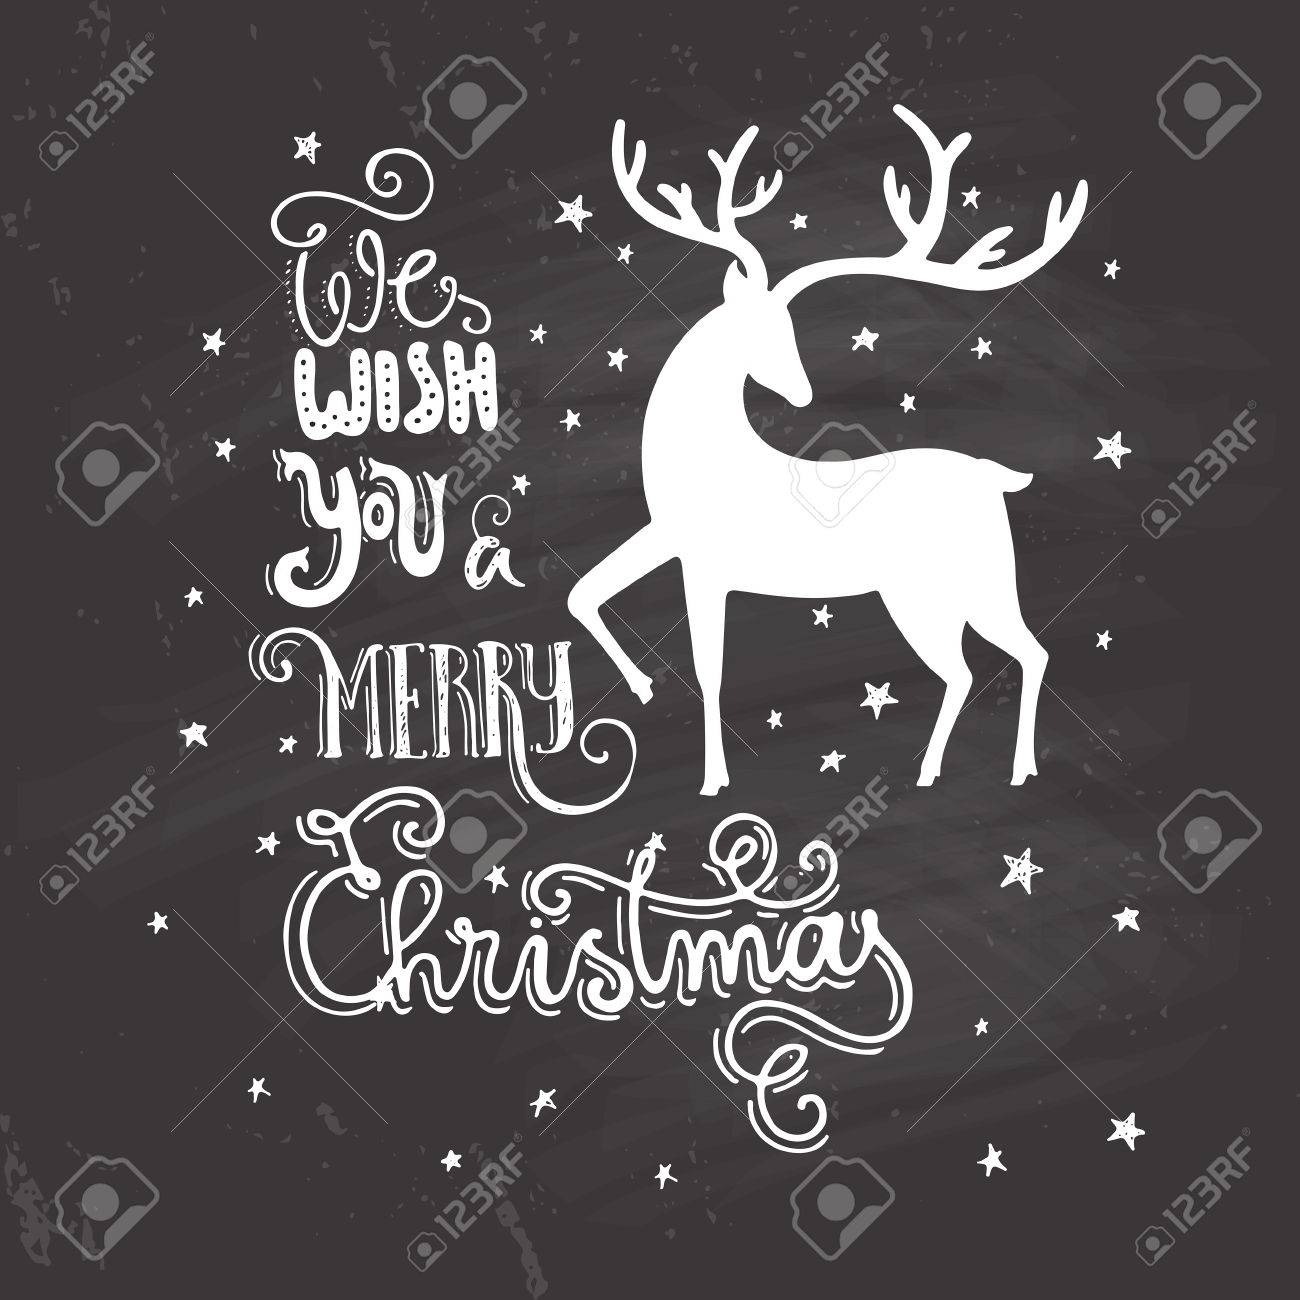 Unique Christmas Cards.Unique Christmas Card With Handdrawn Lettering And Silhouette